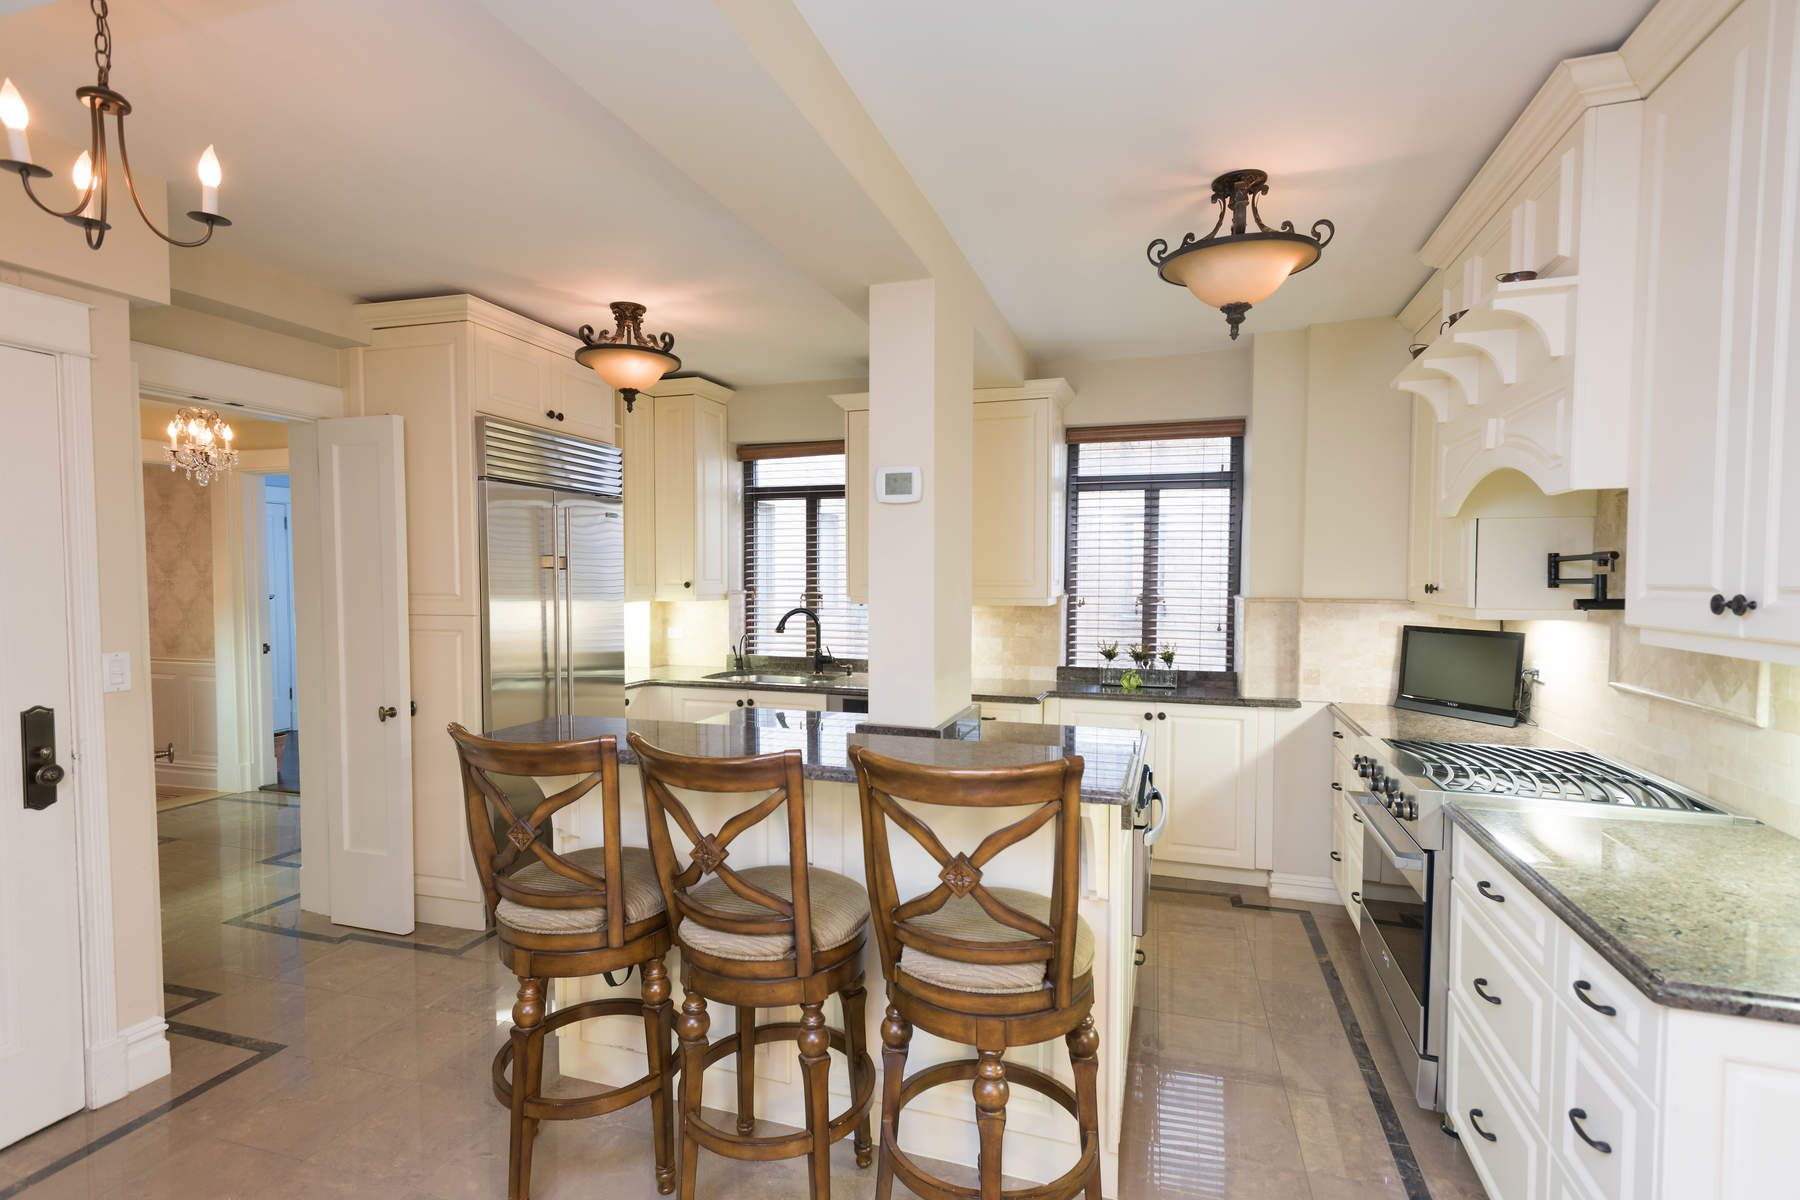 Cooperativa para Venda às Light-Filled Living on Sutton Pl South 2 Sutton Place South Apt 8DS, Sutton Place, New York, Nova York, 10022 Estados Unidos